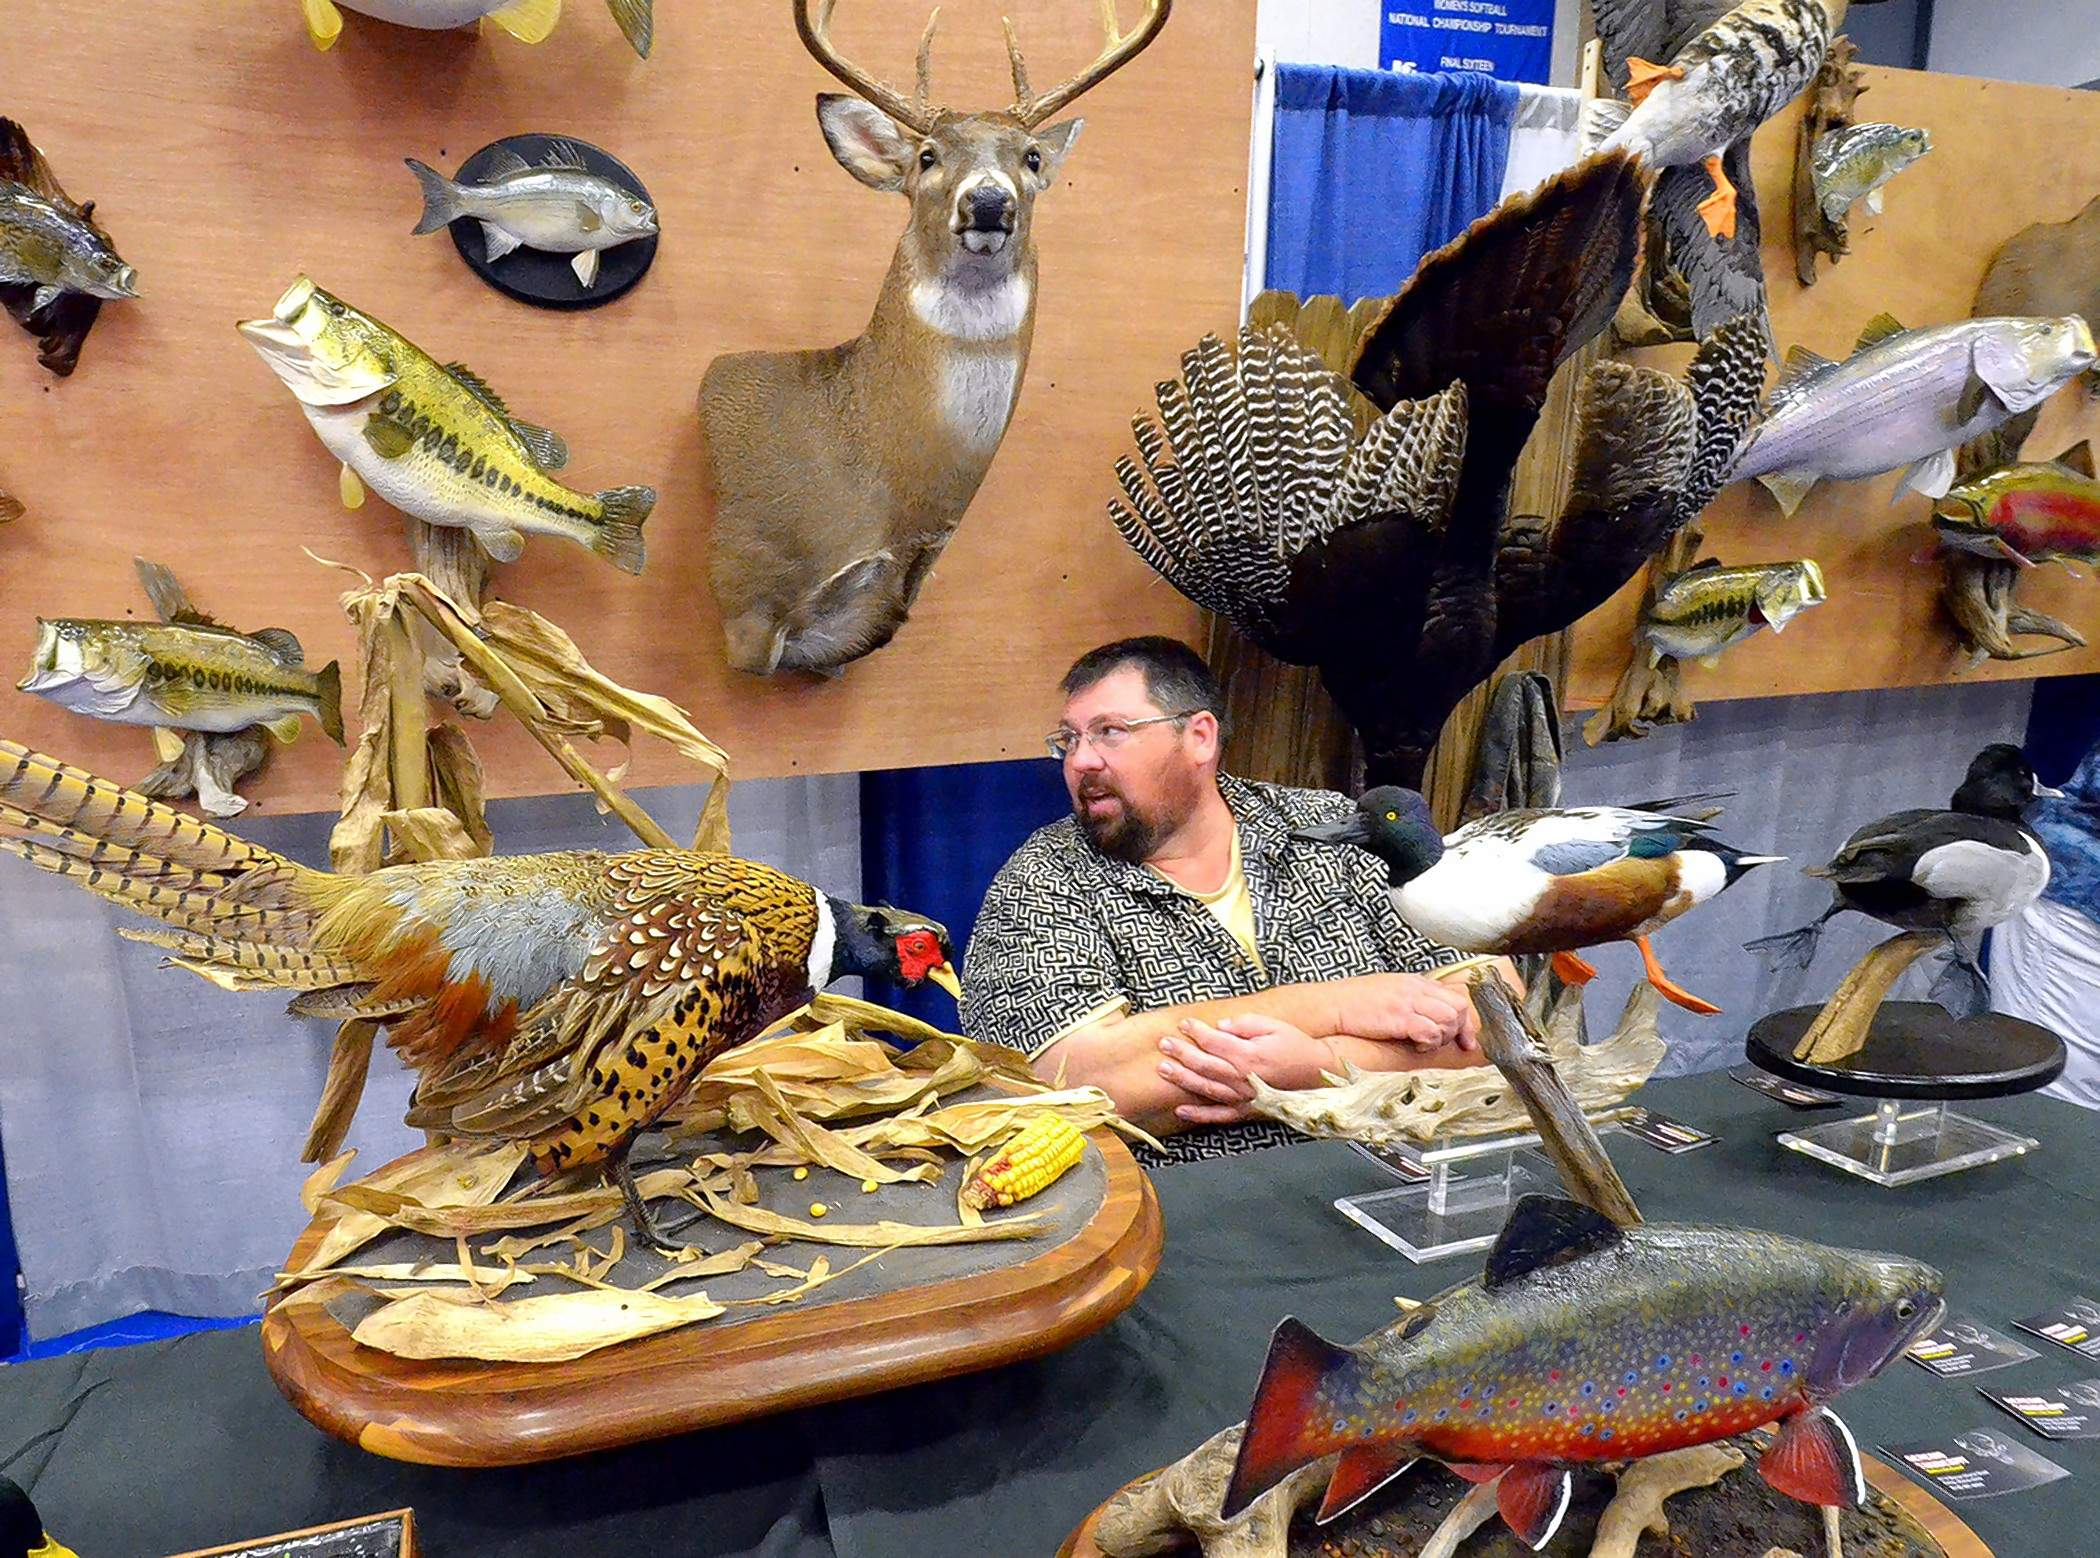 Ewing taxidermist Bryan McGill is surrounded by some of his work at the recent Southern Illinois Hunting and Fishing Days show in Carterville.